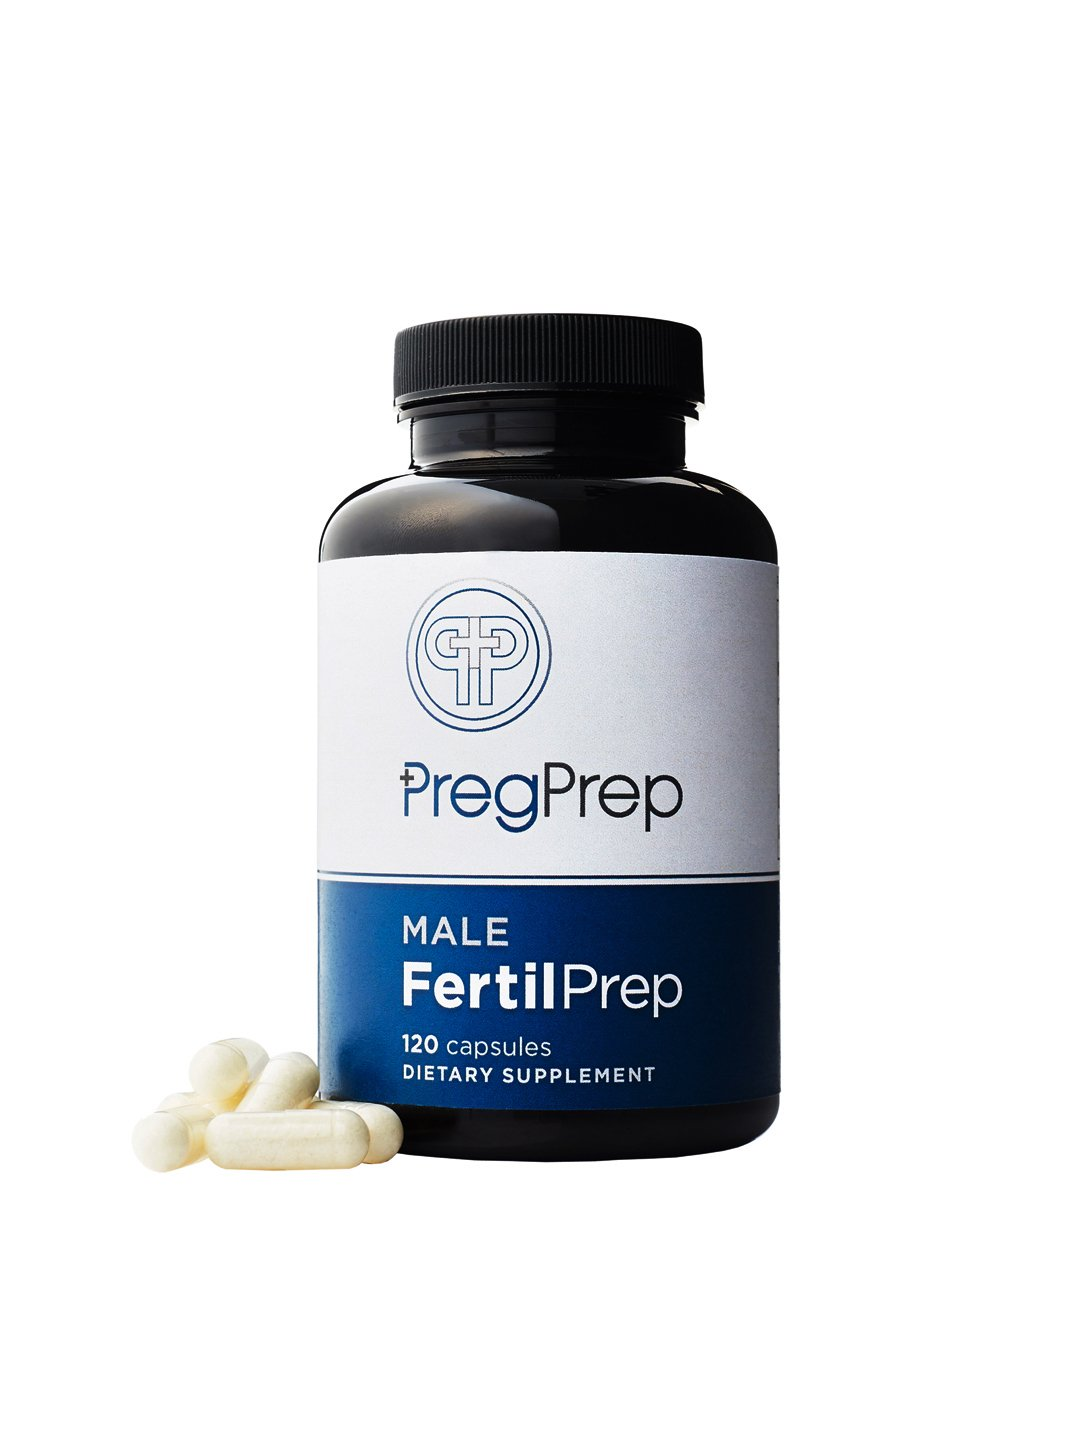 PregPrep Complete Conception + Male FertilPrep: Fertility Supplements for Women and Men by PregPrep (Image #2)